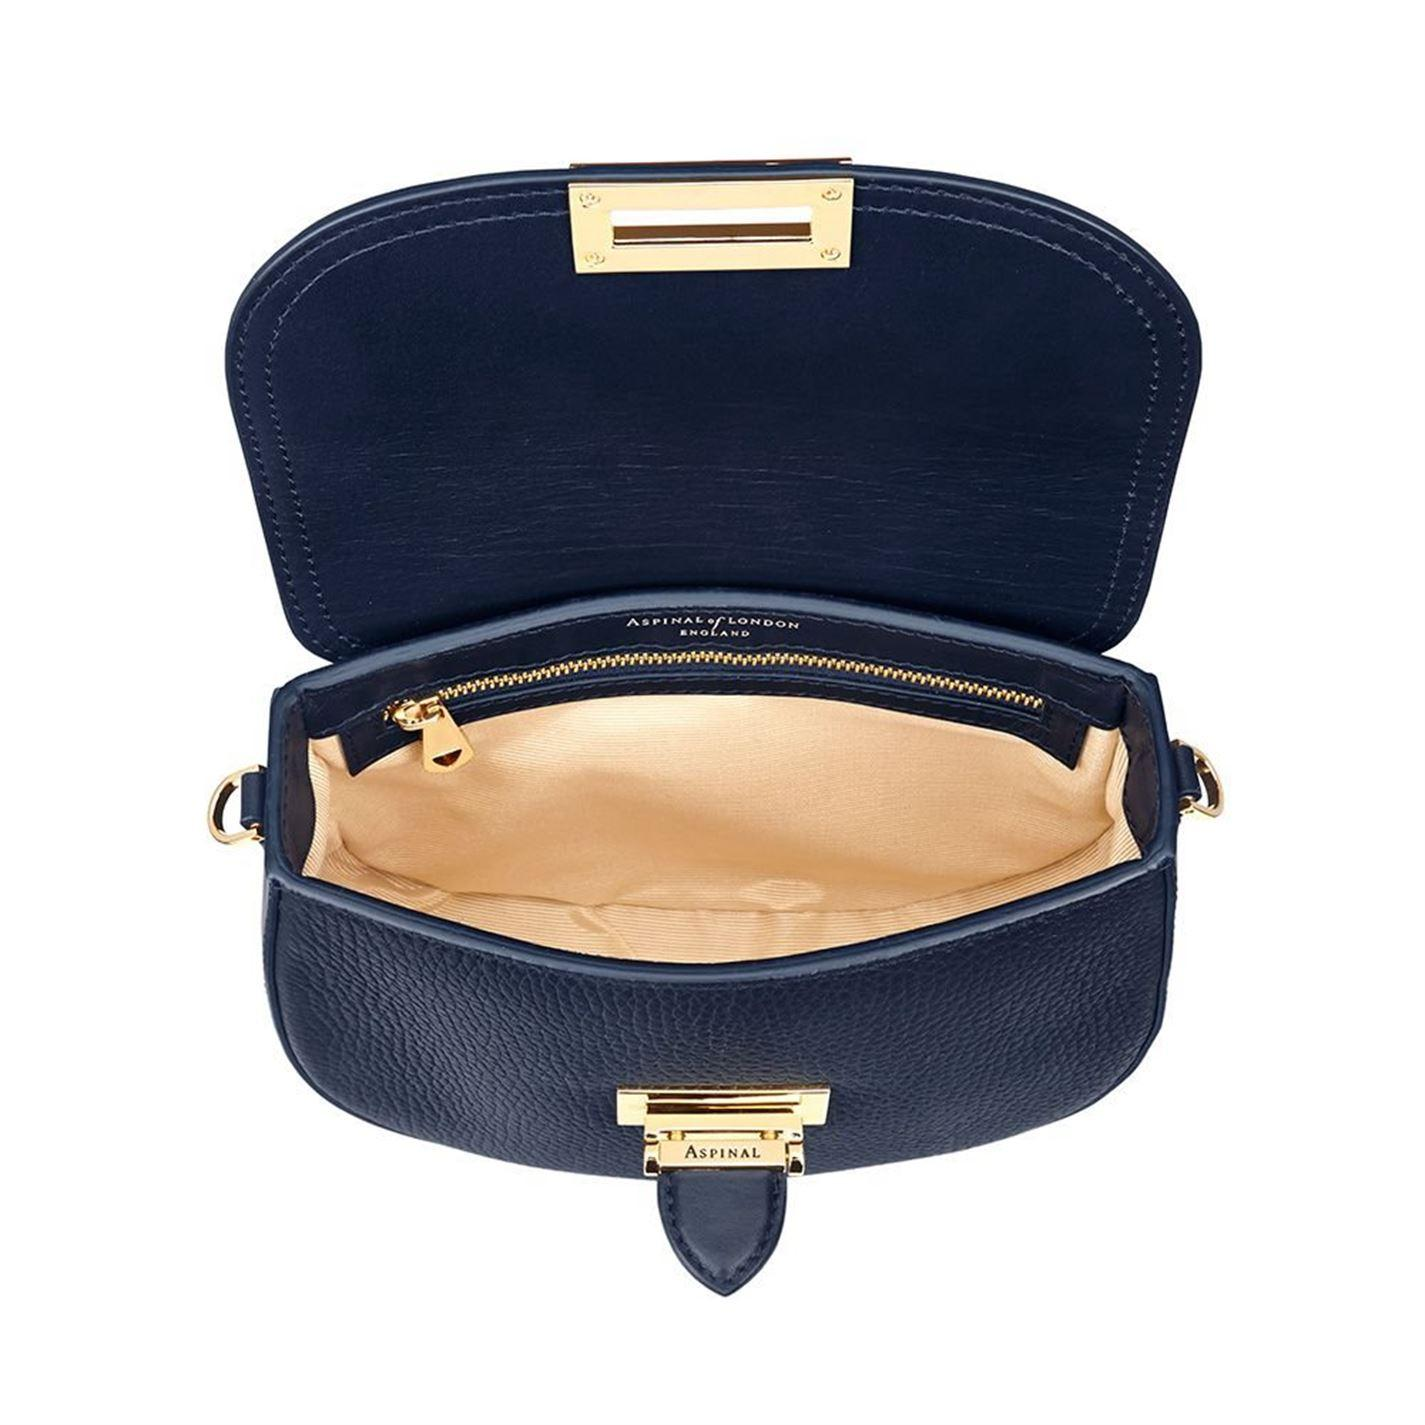 Aspinal of London Leather Ladies Portobello Bag in Navy (Blue)